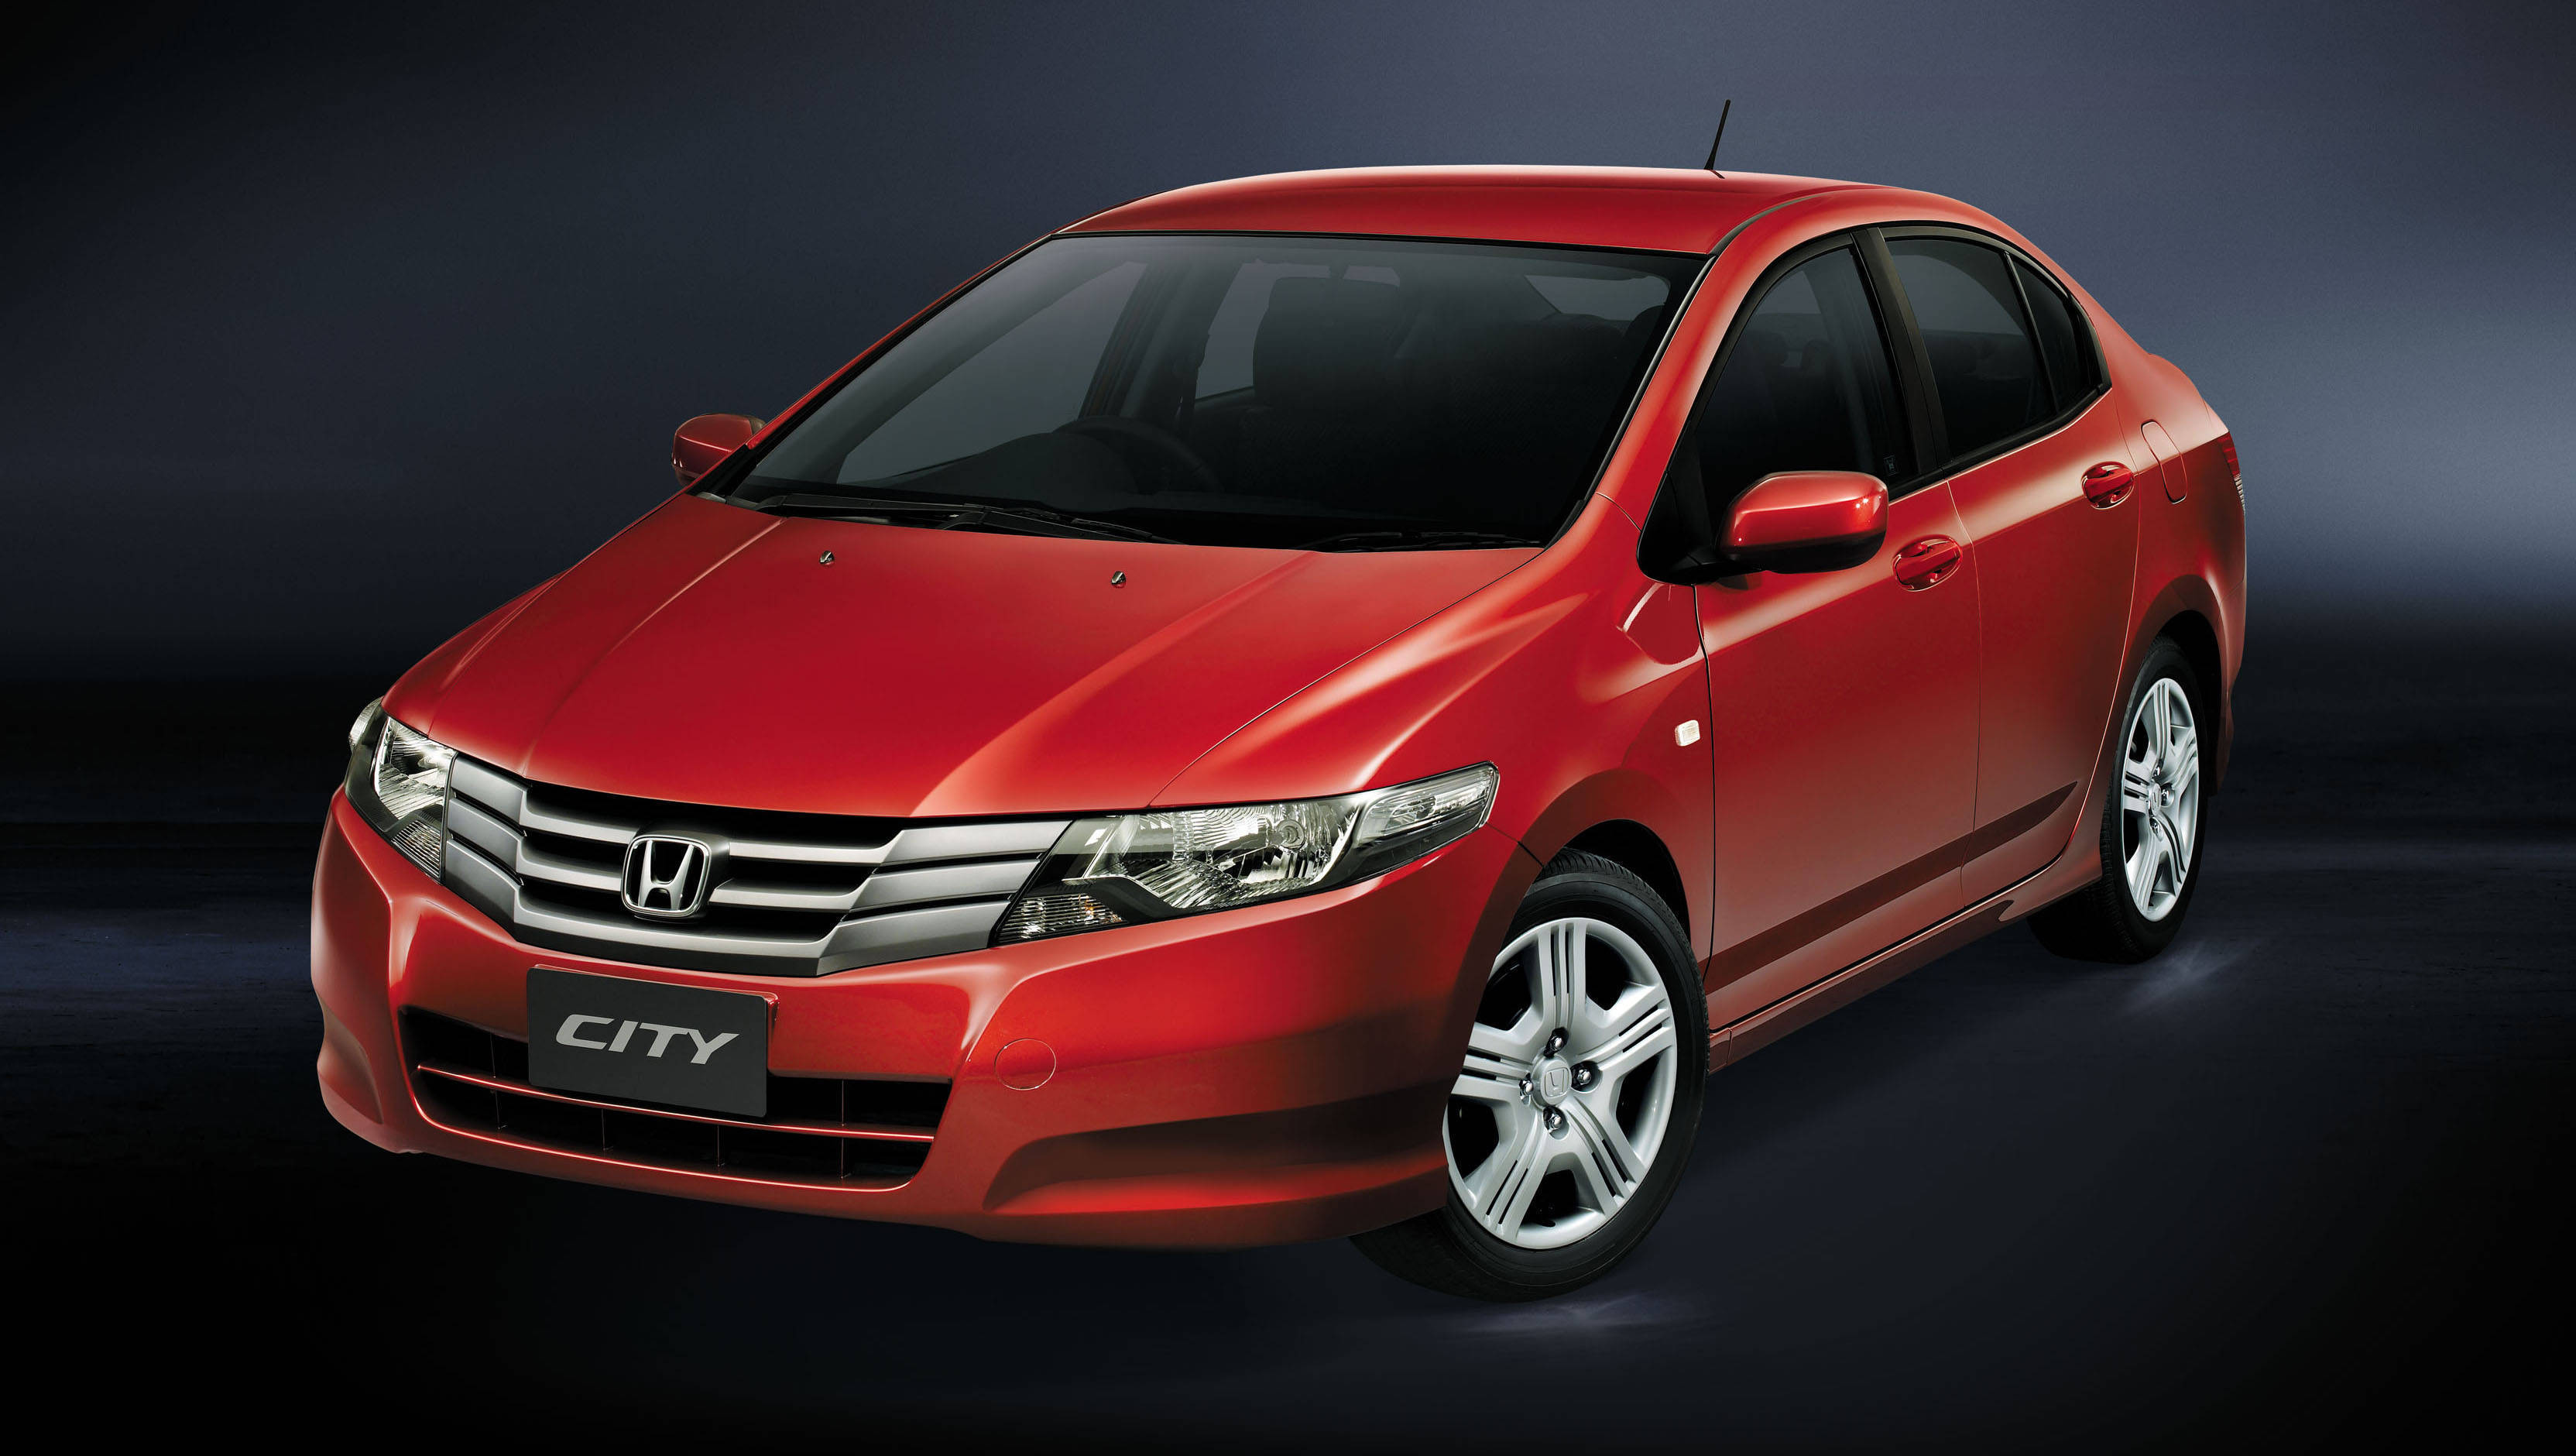 Honda India Recalls 41580 Units Of Jazz City Civic And Accord To Replace Faulty